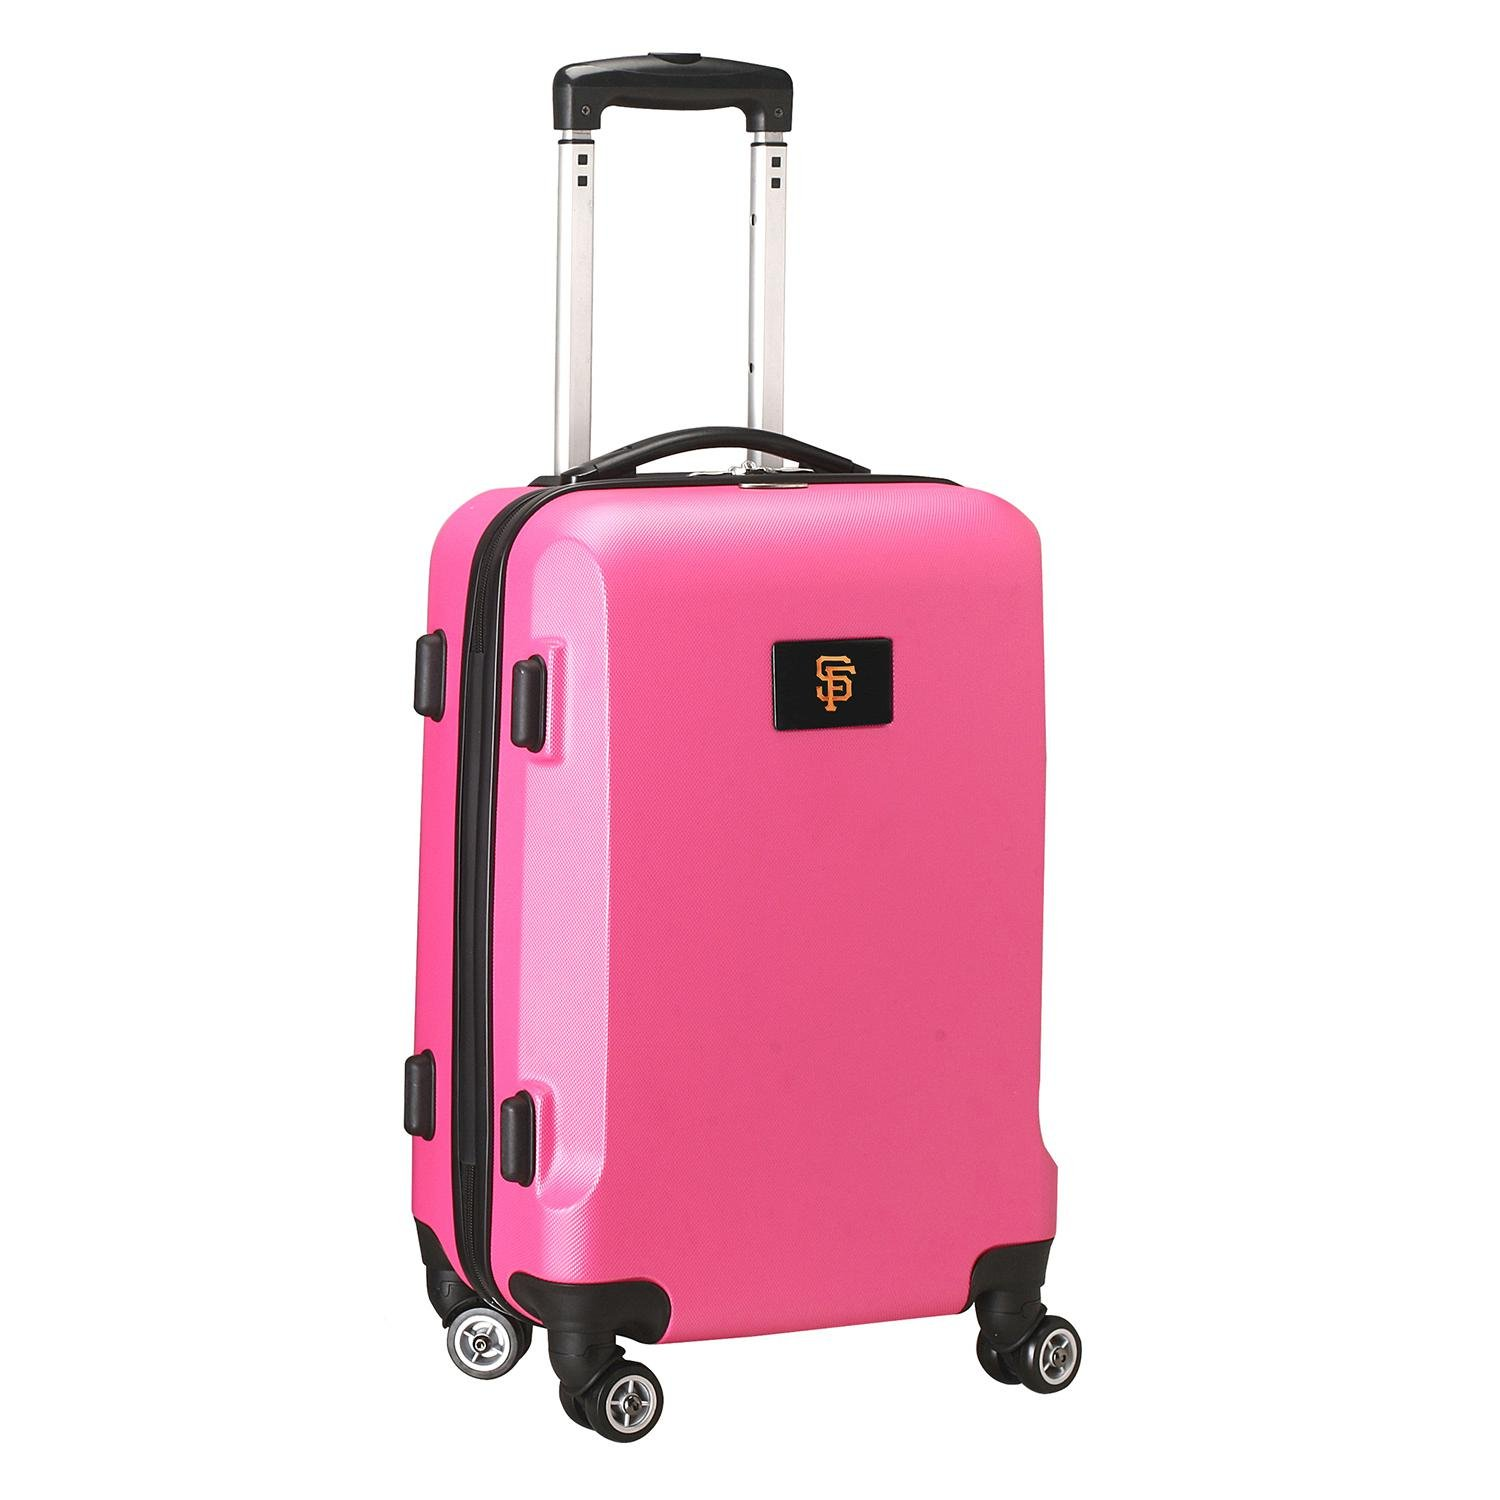 MLB San Francisco Giants Carry-On Hardcase Spinner, Pink by Denco